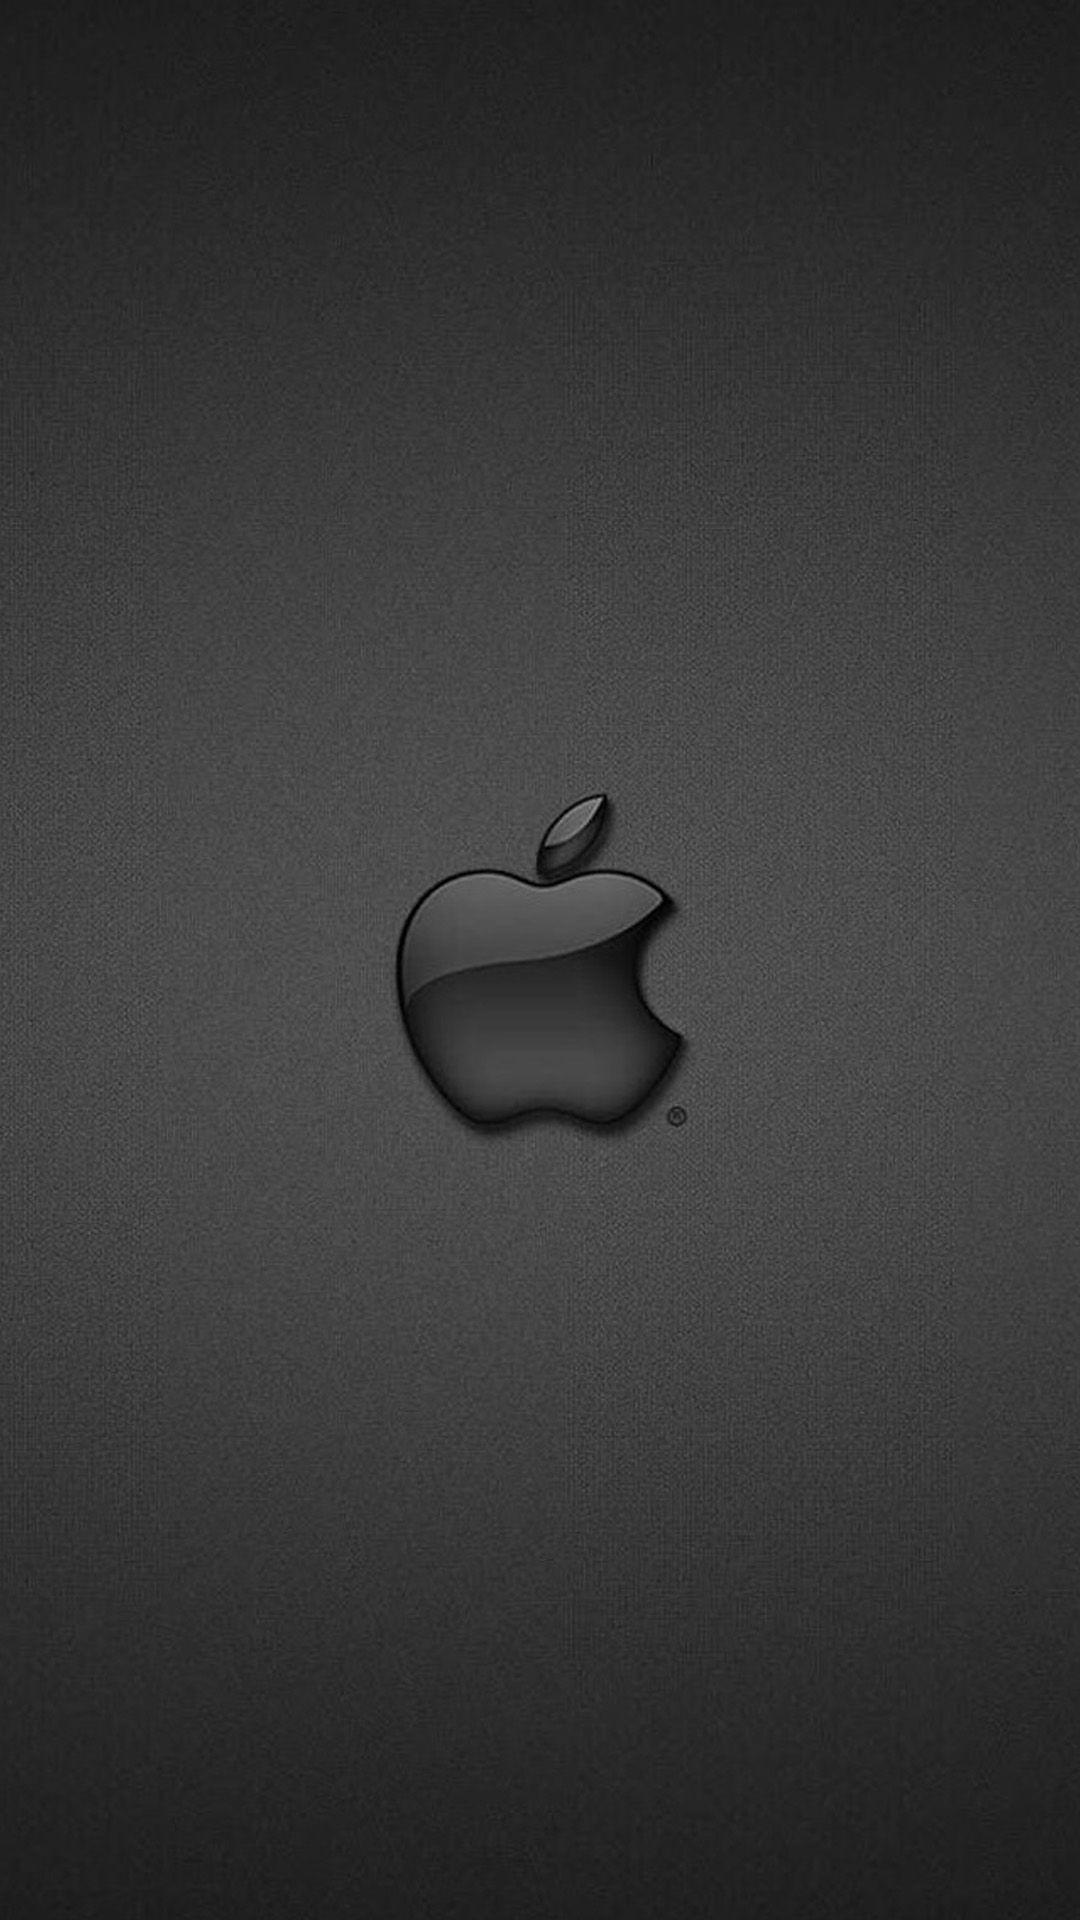 Apple Logo LG G2 Wallpapers HD 299, LG G2 Wallpapers, LG Wallpapers